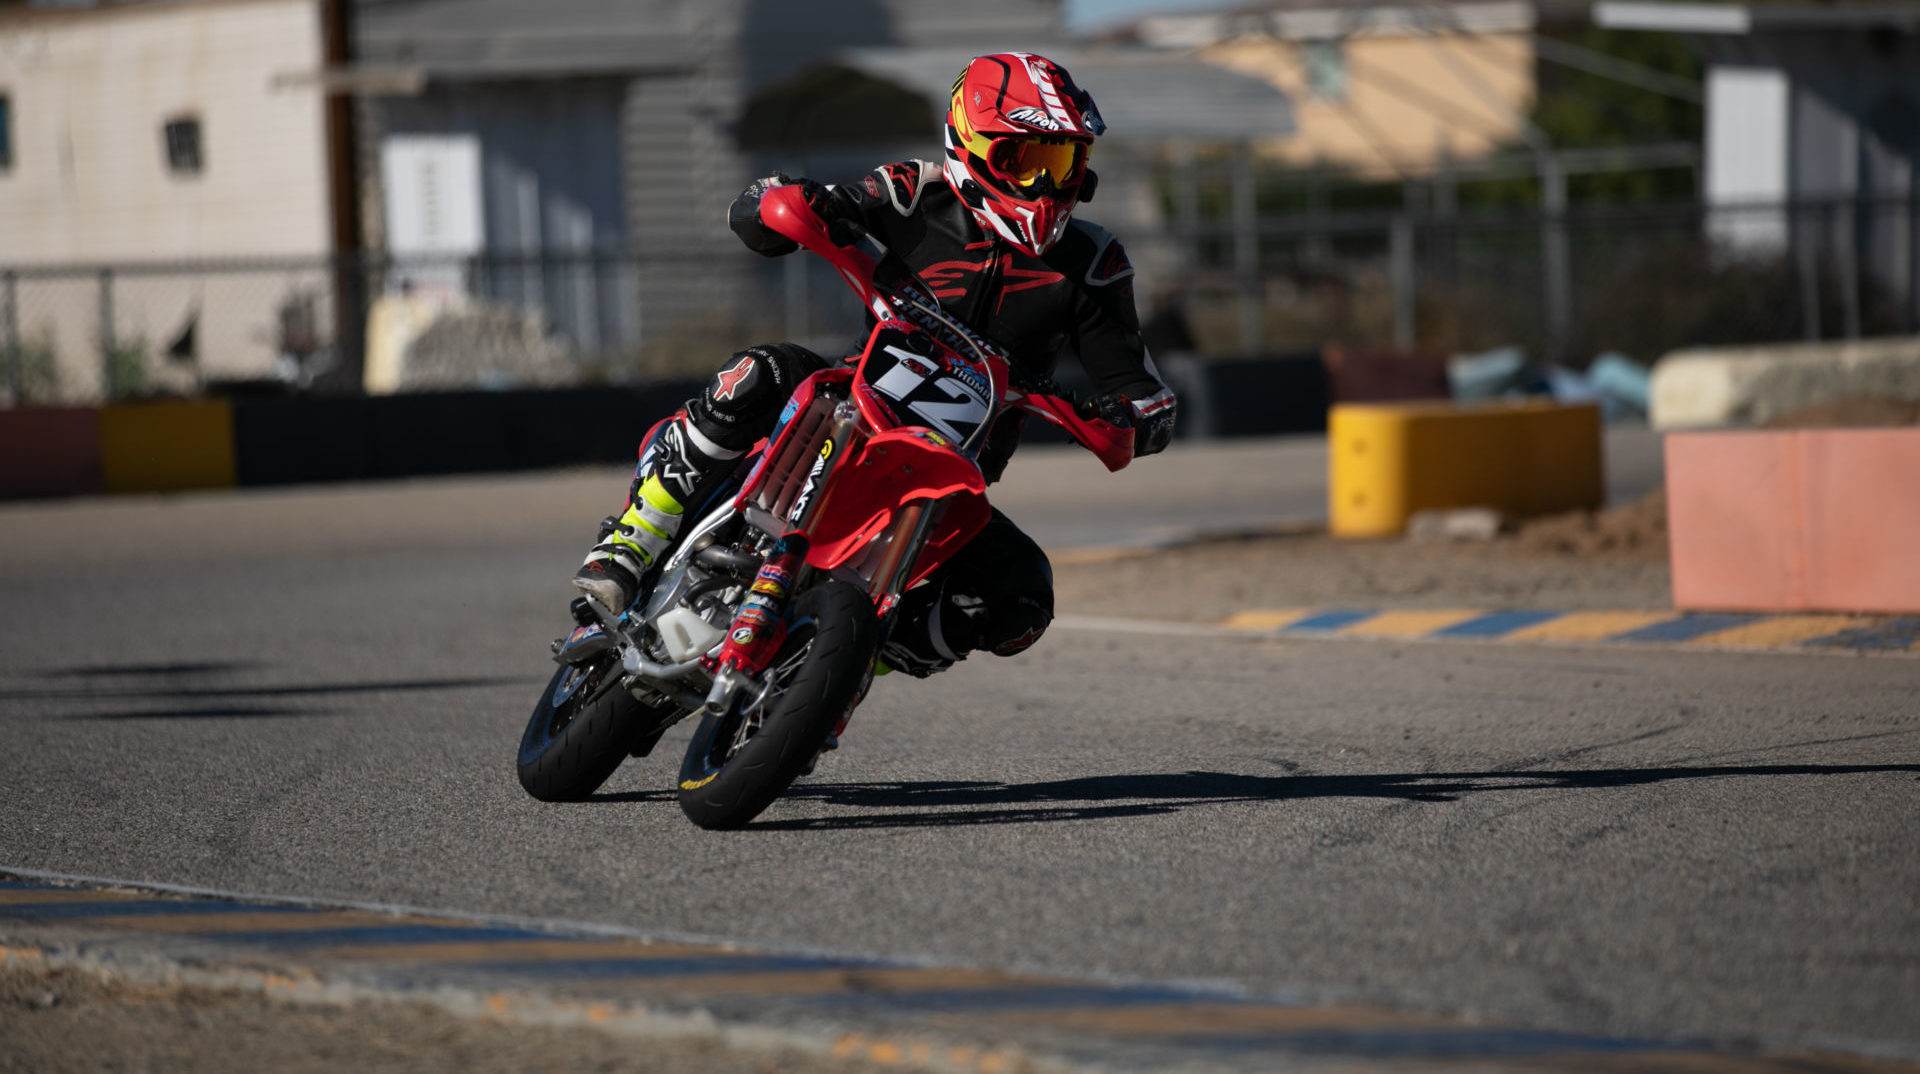 A rider using Dunlop's new TT93GP mini road racing tires. Photo courtesy Dunlop.